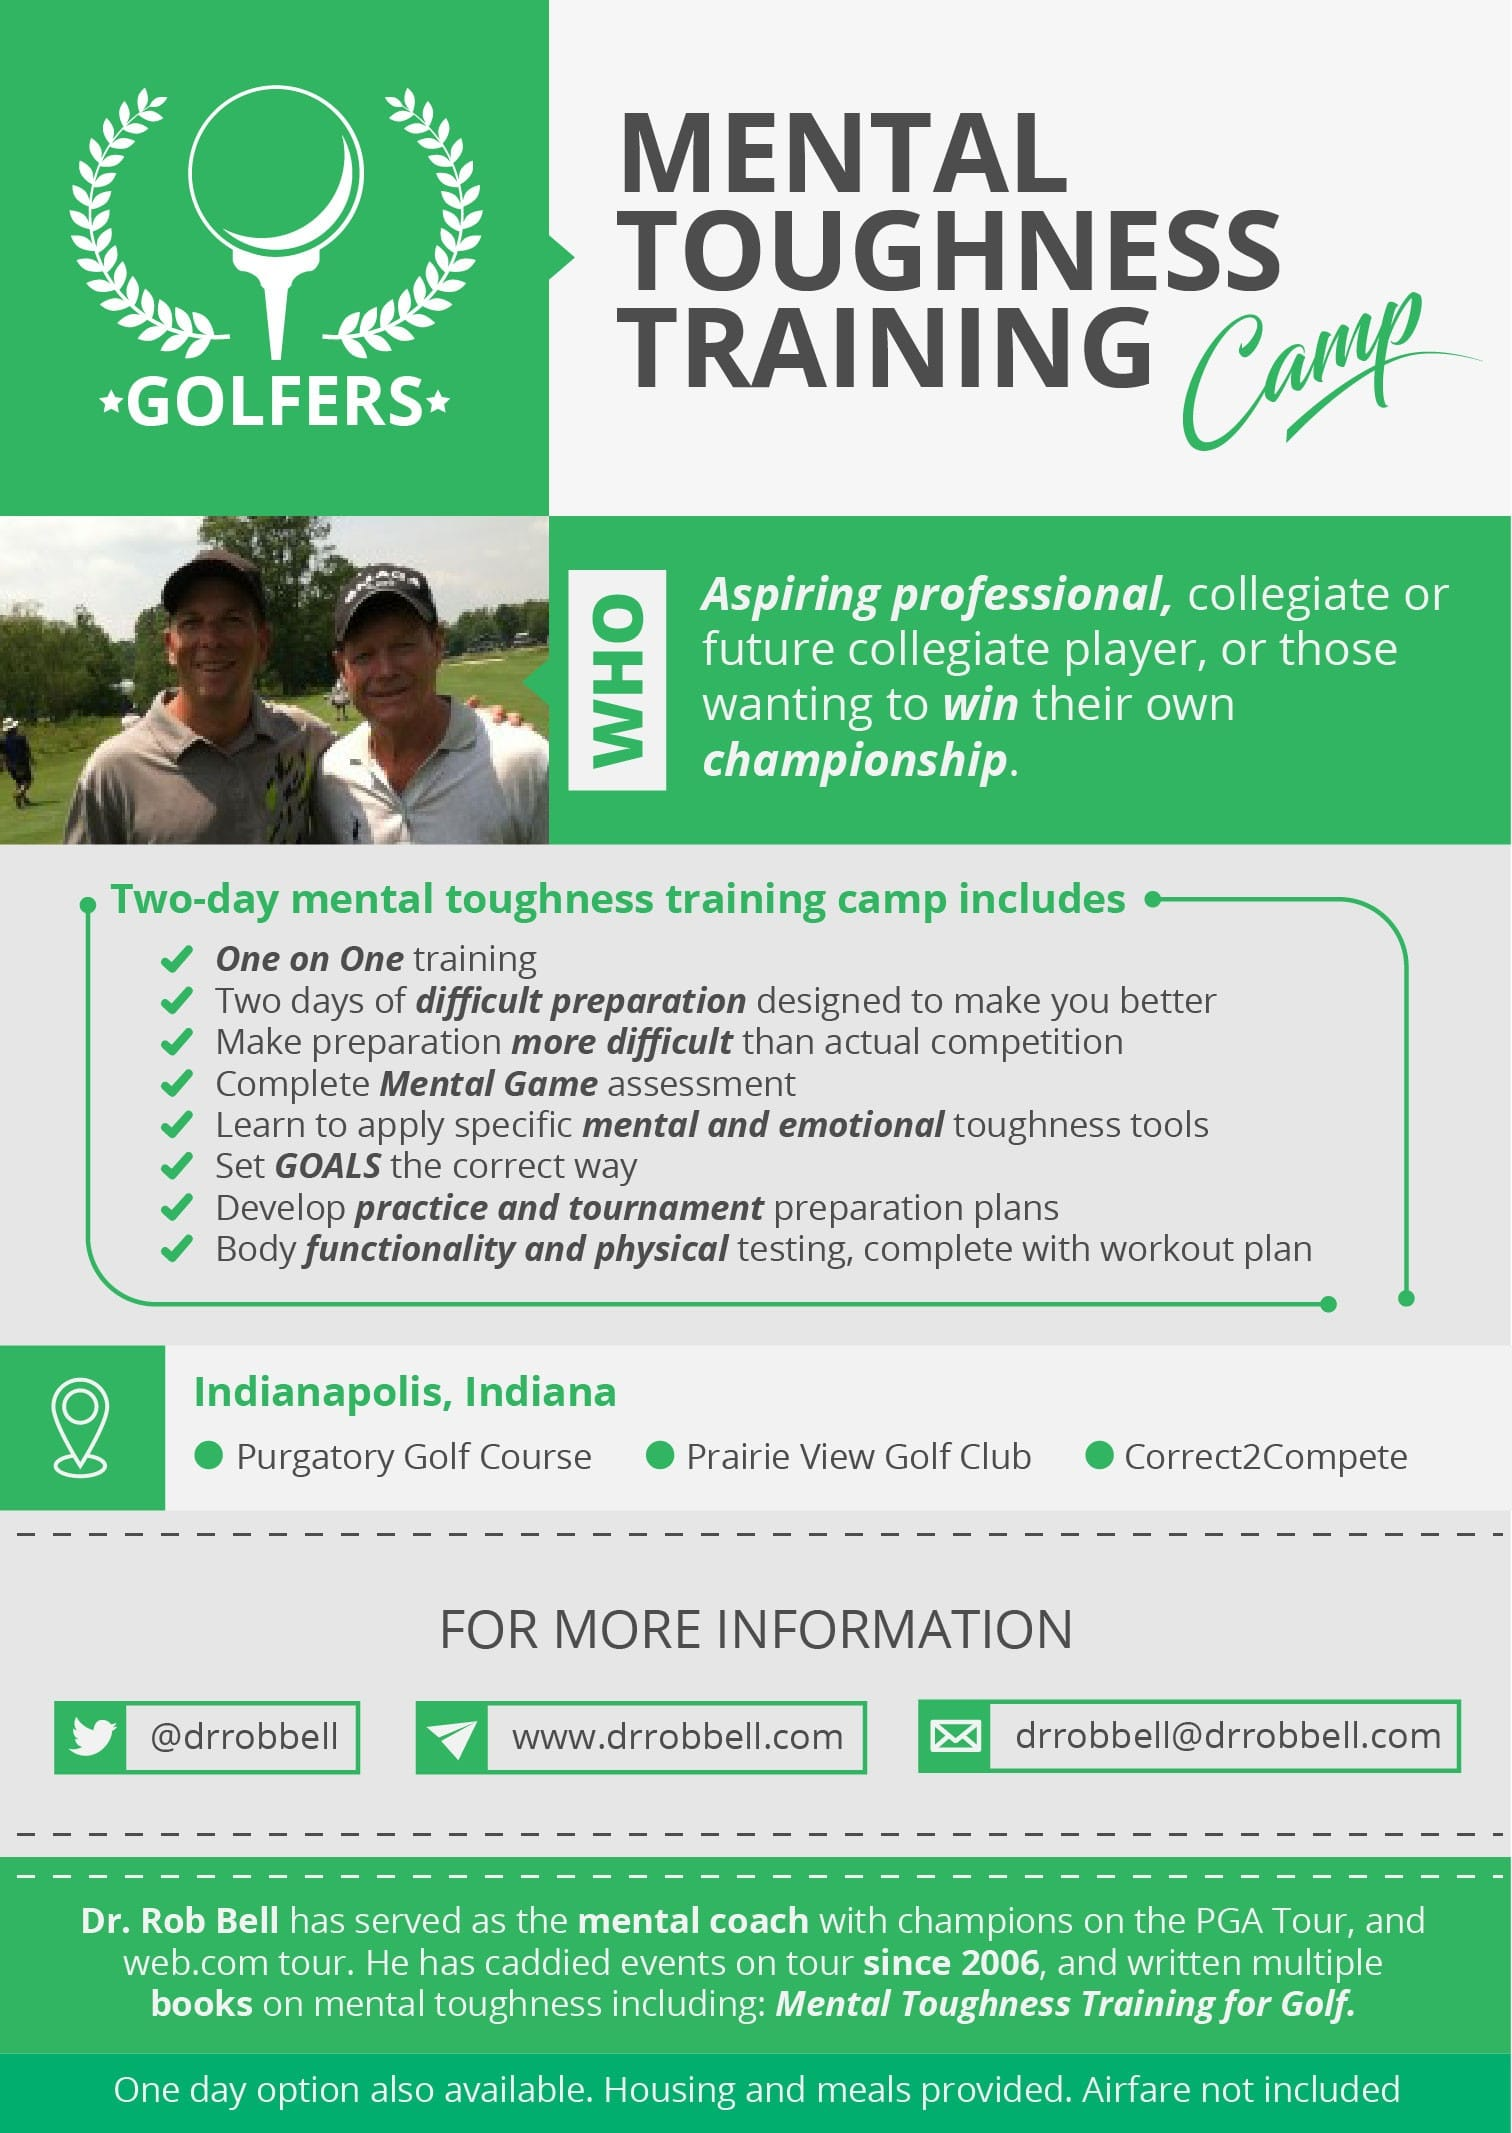 mental toughness for golfers training camp